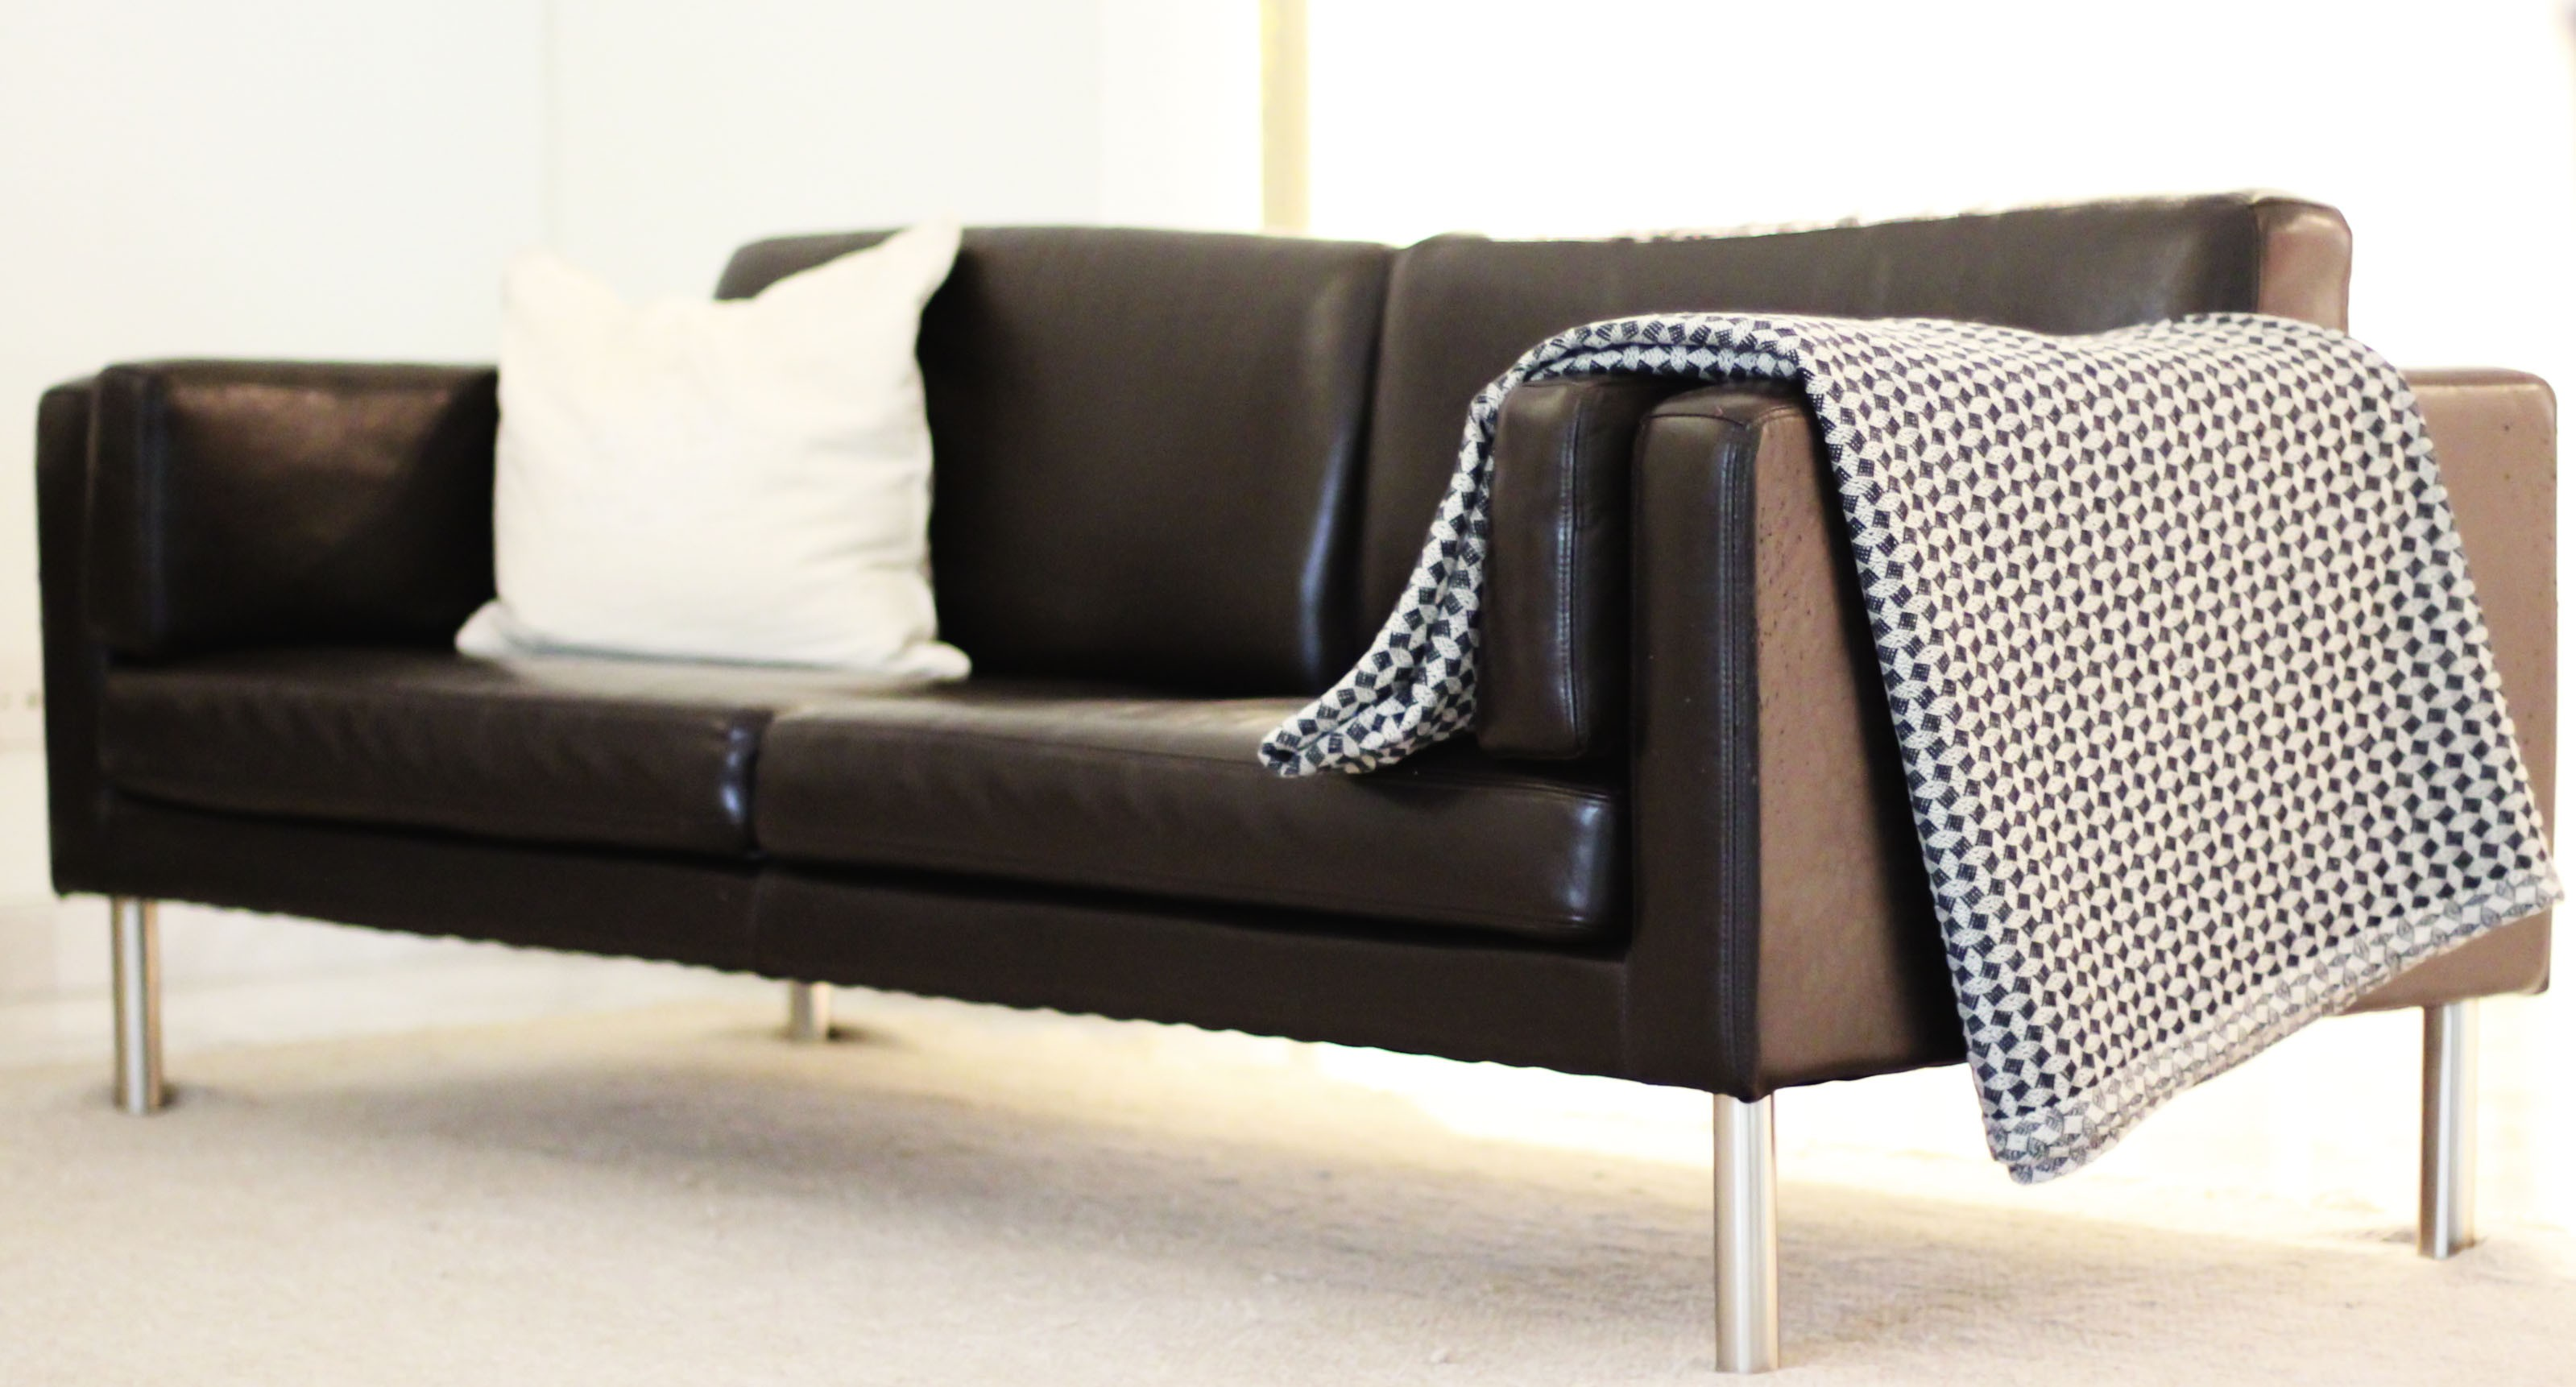 furniture-living-room-interior-metal-chrome-legs-leather-love-seat-with-white-linen-cushions-enamour-ikea-leather-sofa-ideas-to-embellish-your-living-room